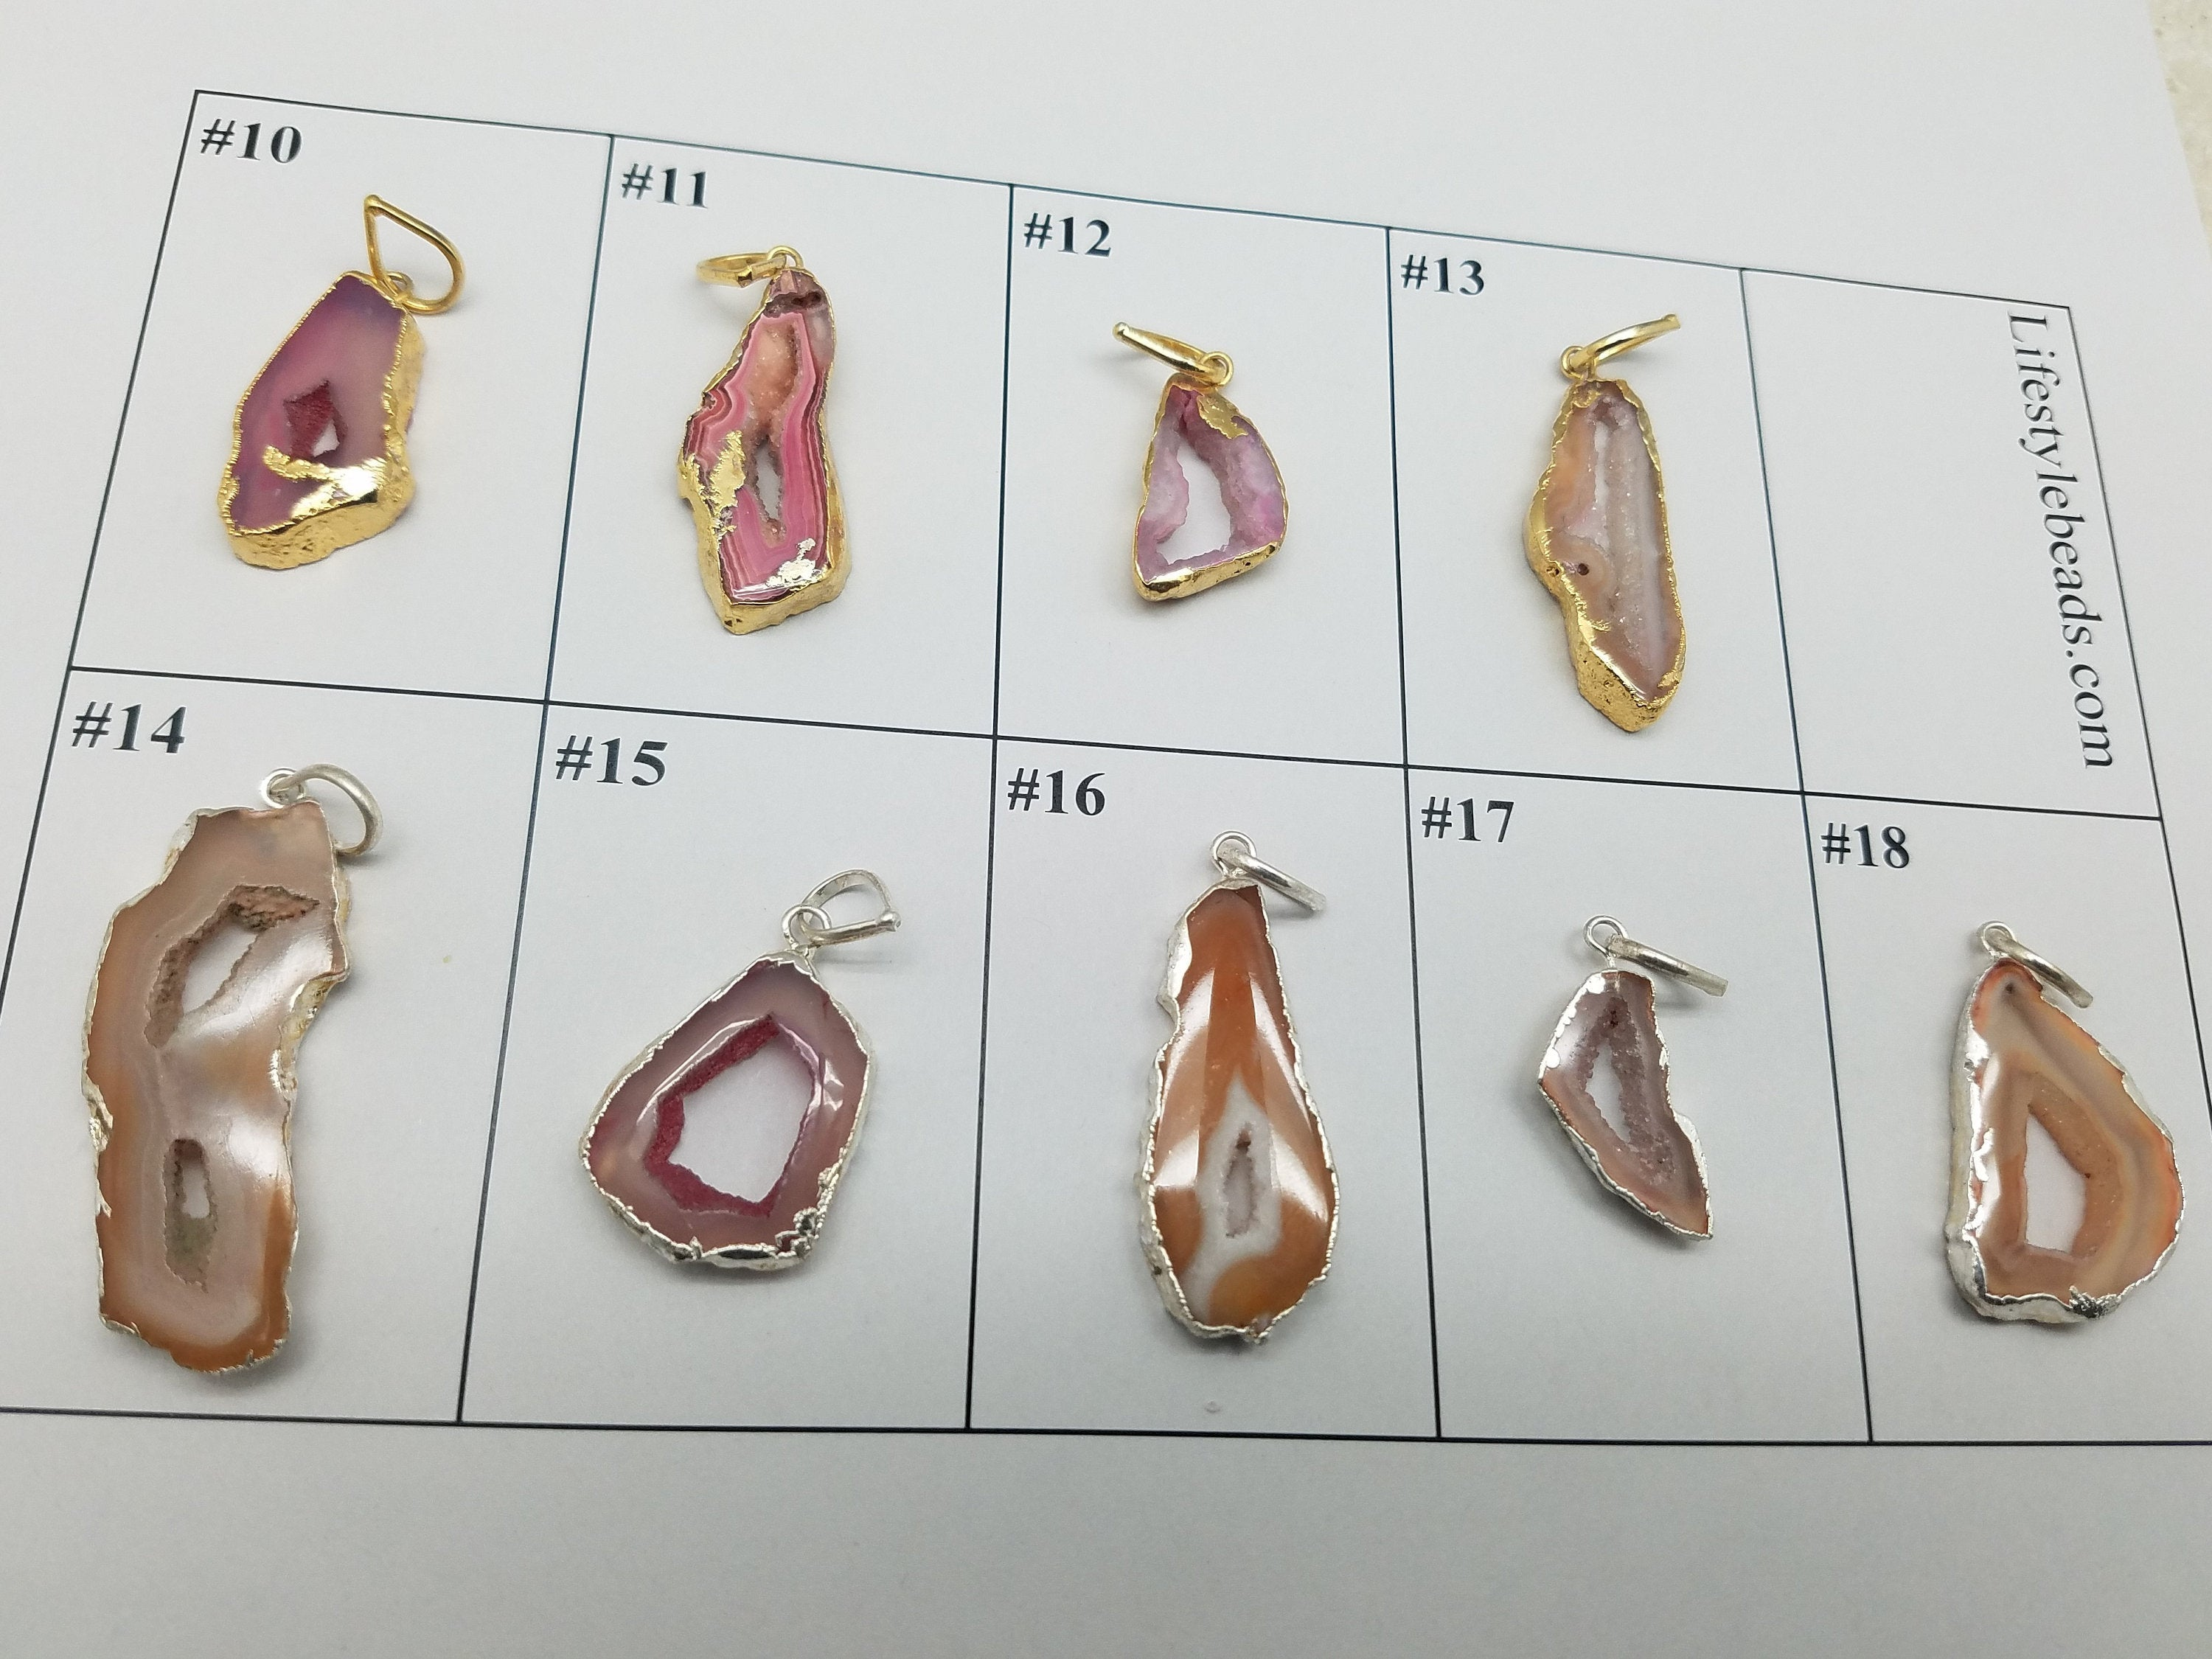 Druzy Pendants with Gold & Silver Plating / Design 10 - 18